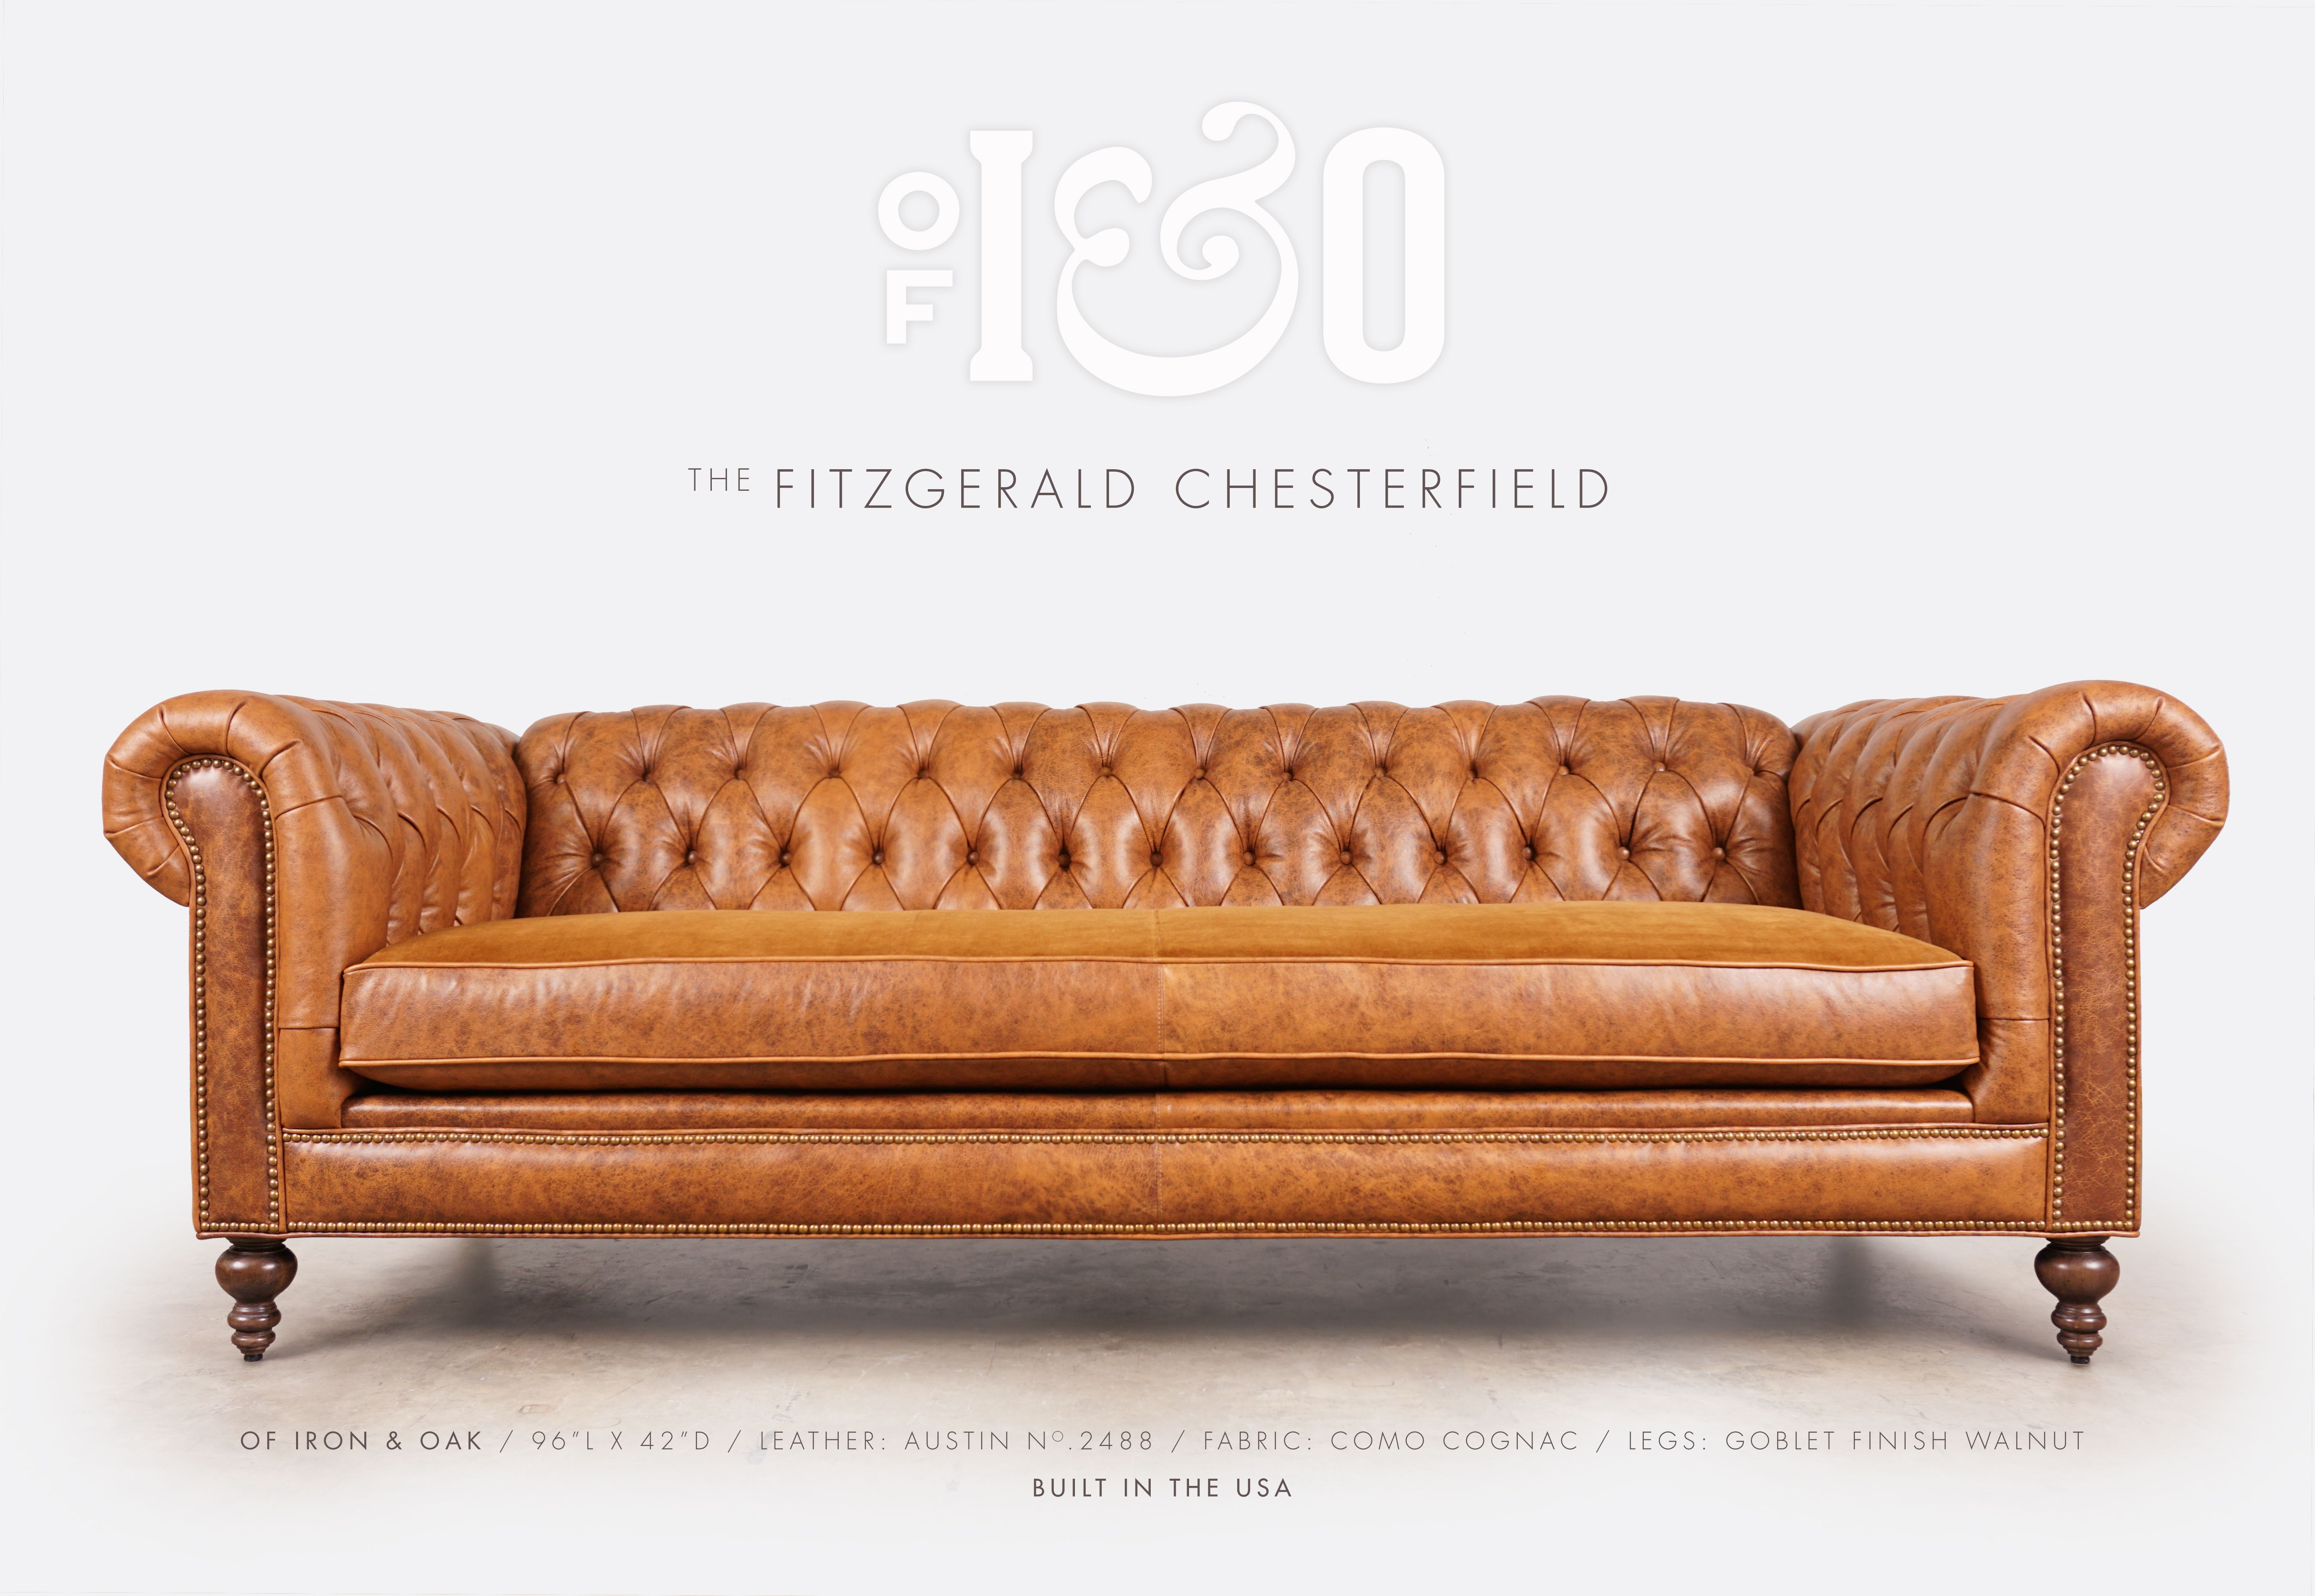 William Blake Chesterfield Sofa the fitzgerald custom classic chesterfield sofas & more in